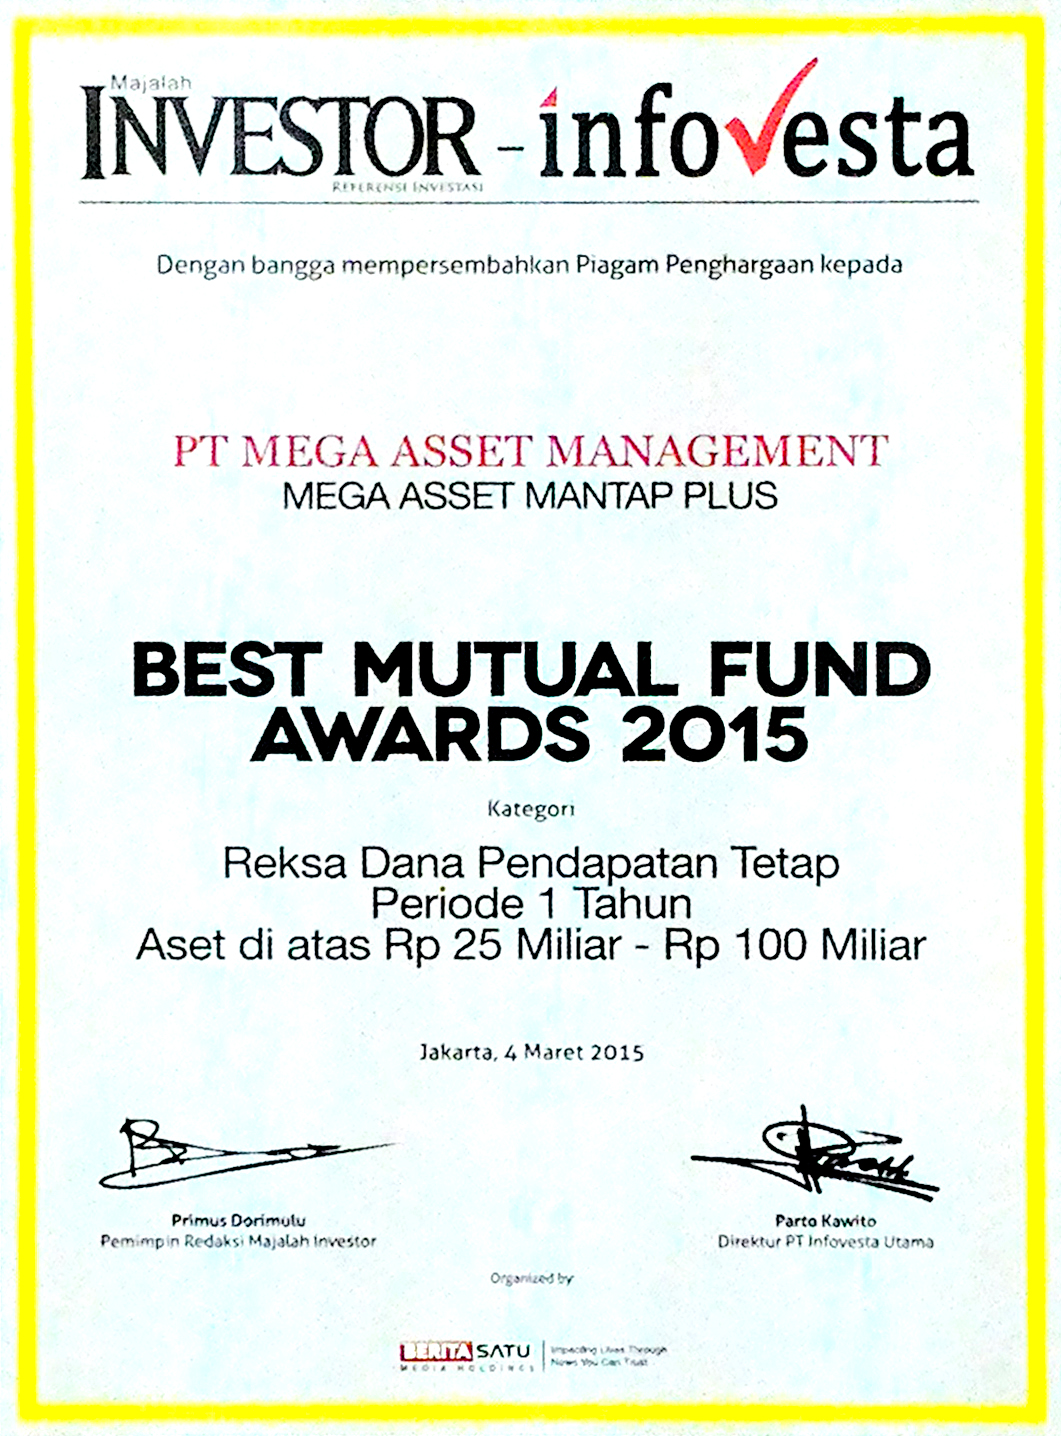 BEST MUTUAL FUND AWARDS 2015